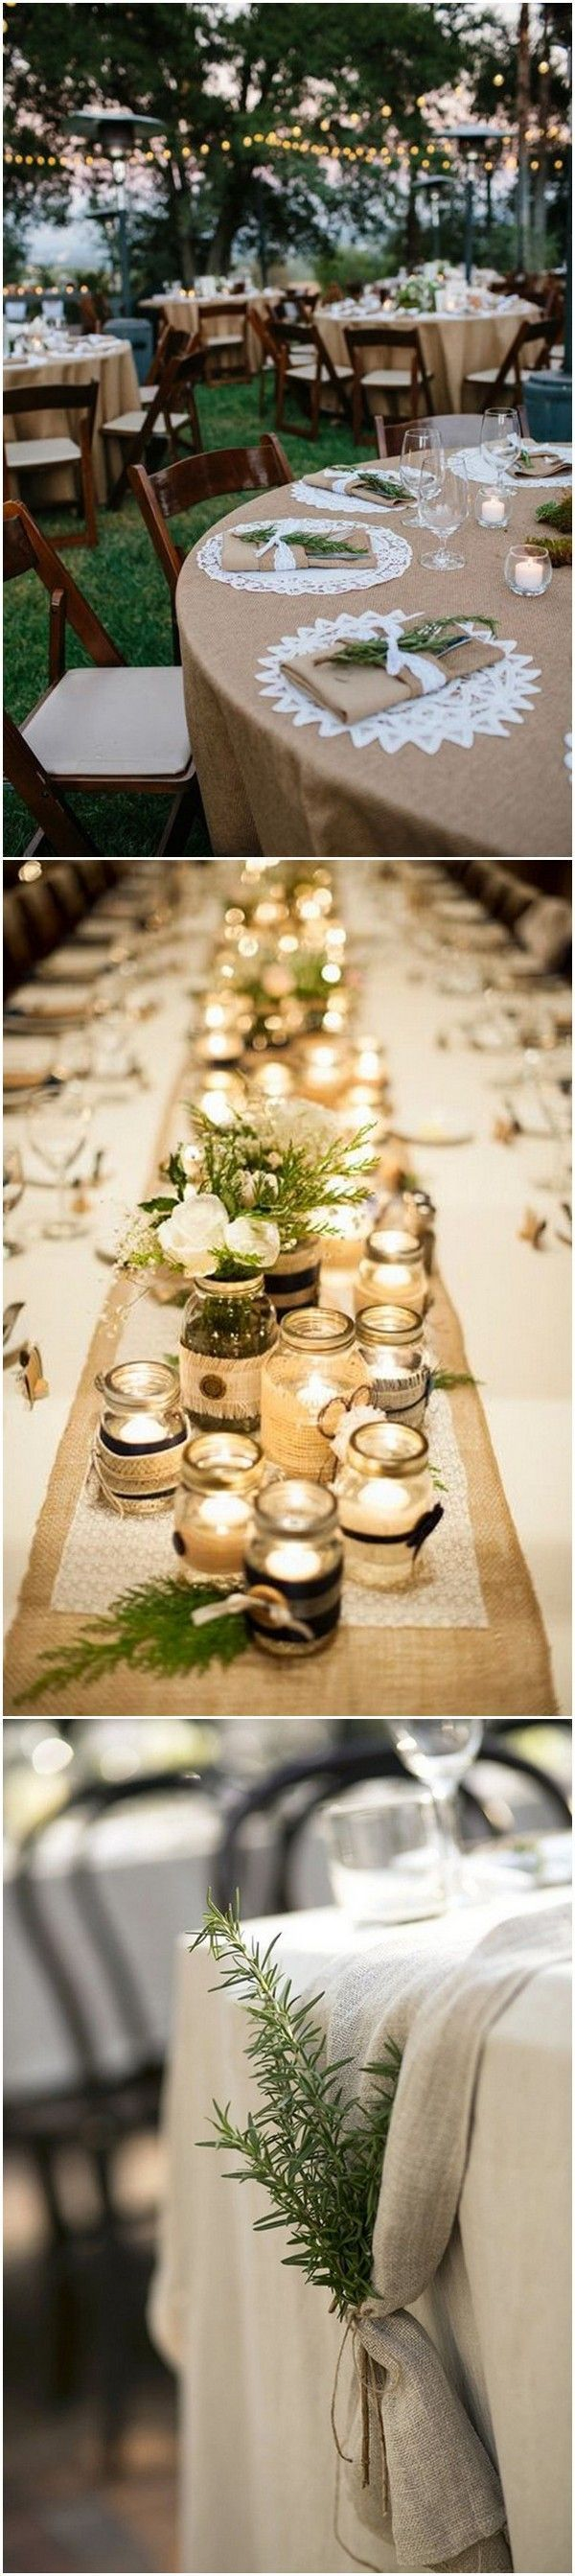 country rustic lace and burlap wedding table decoration ideas